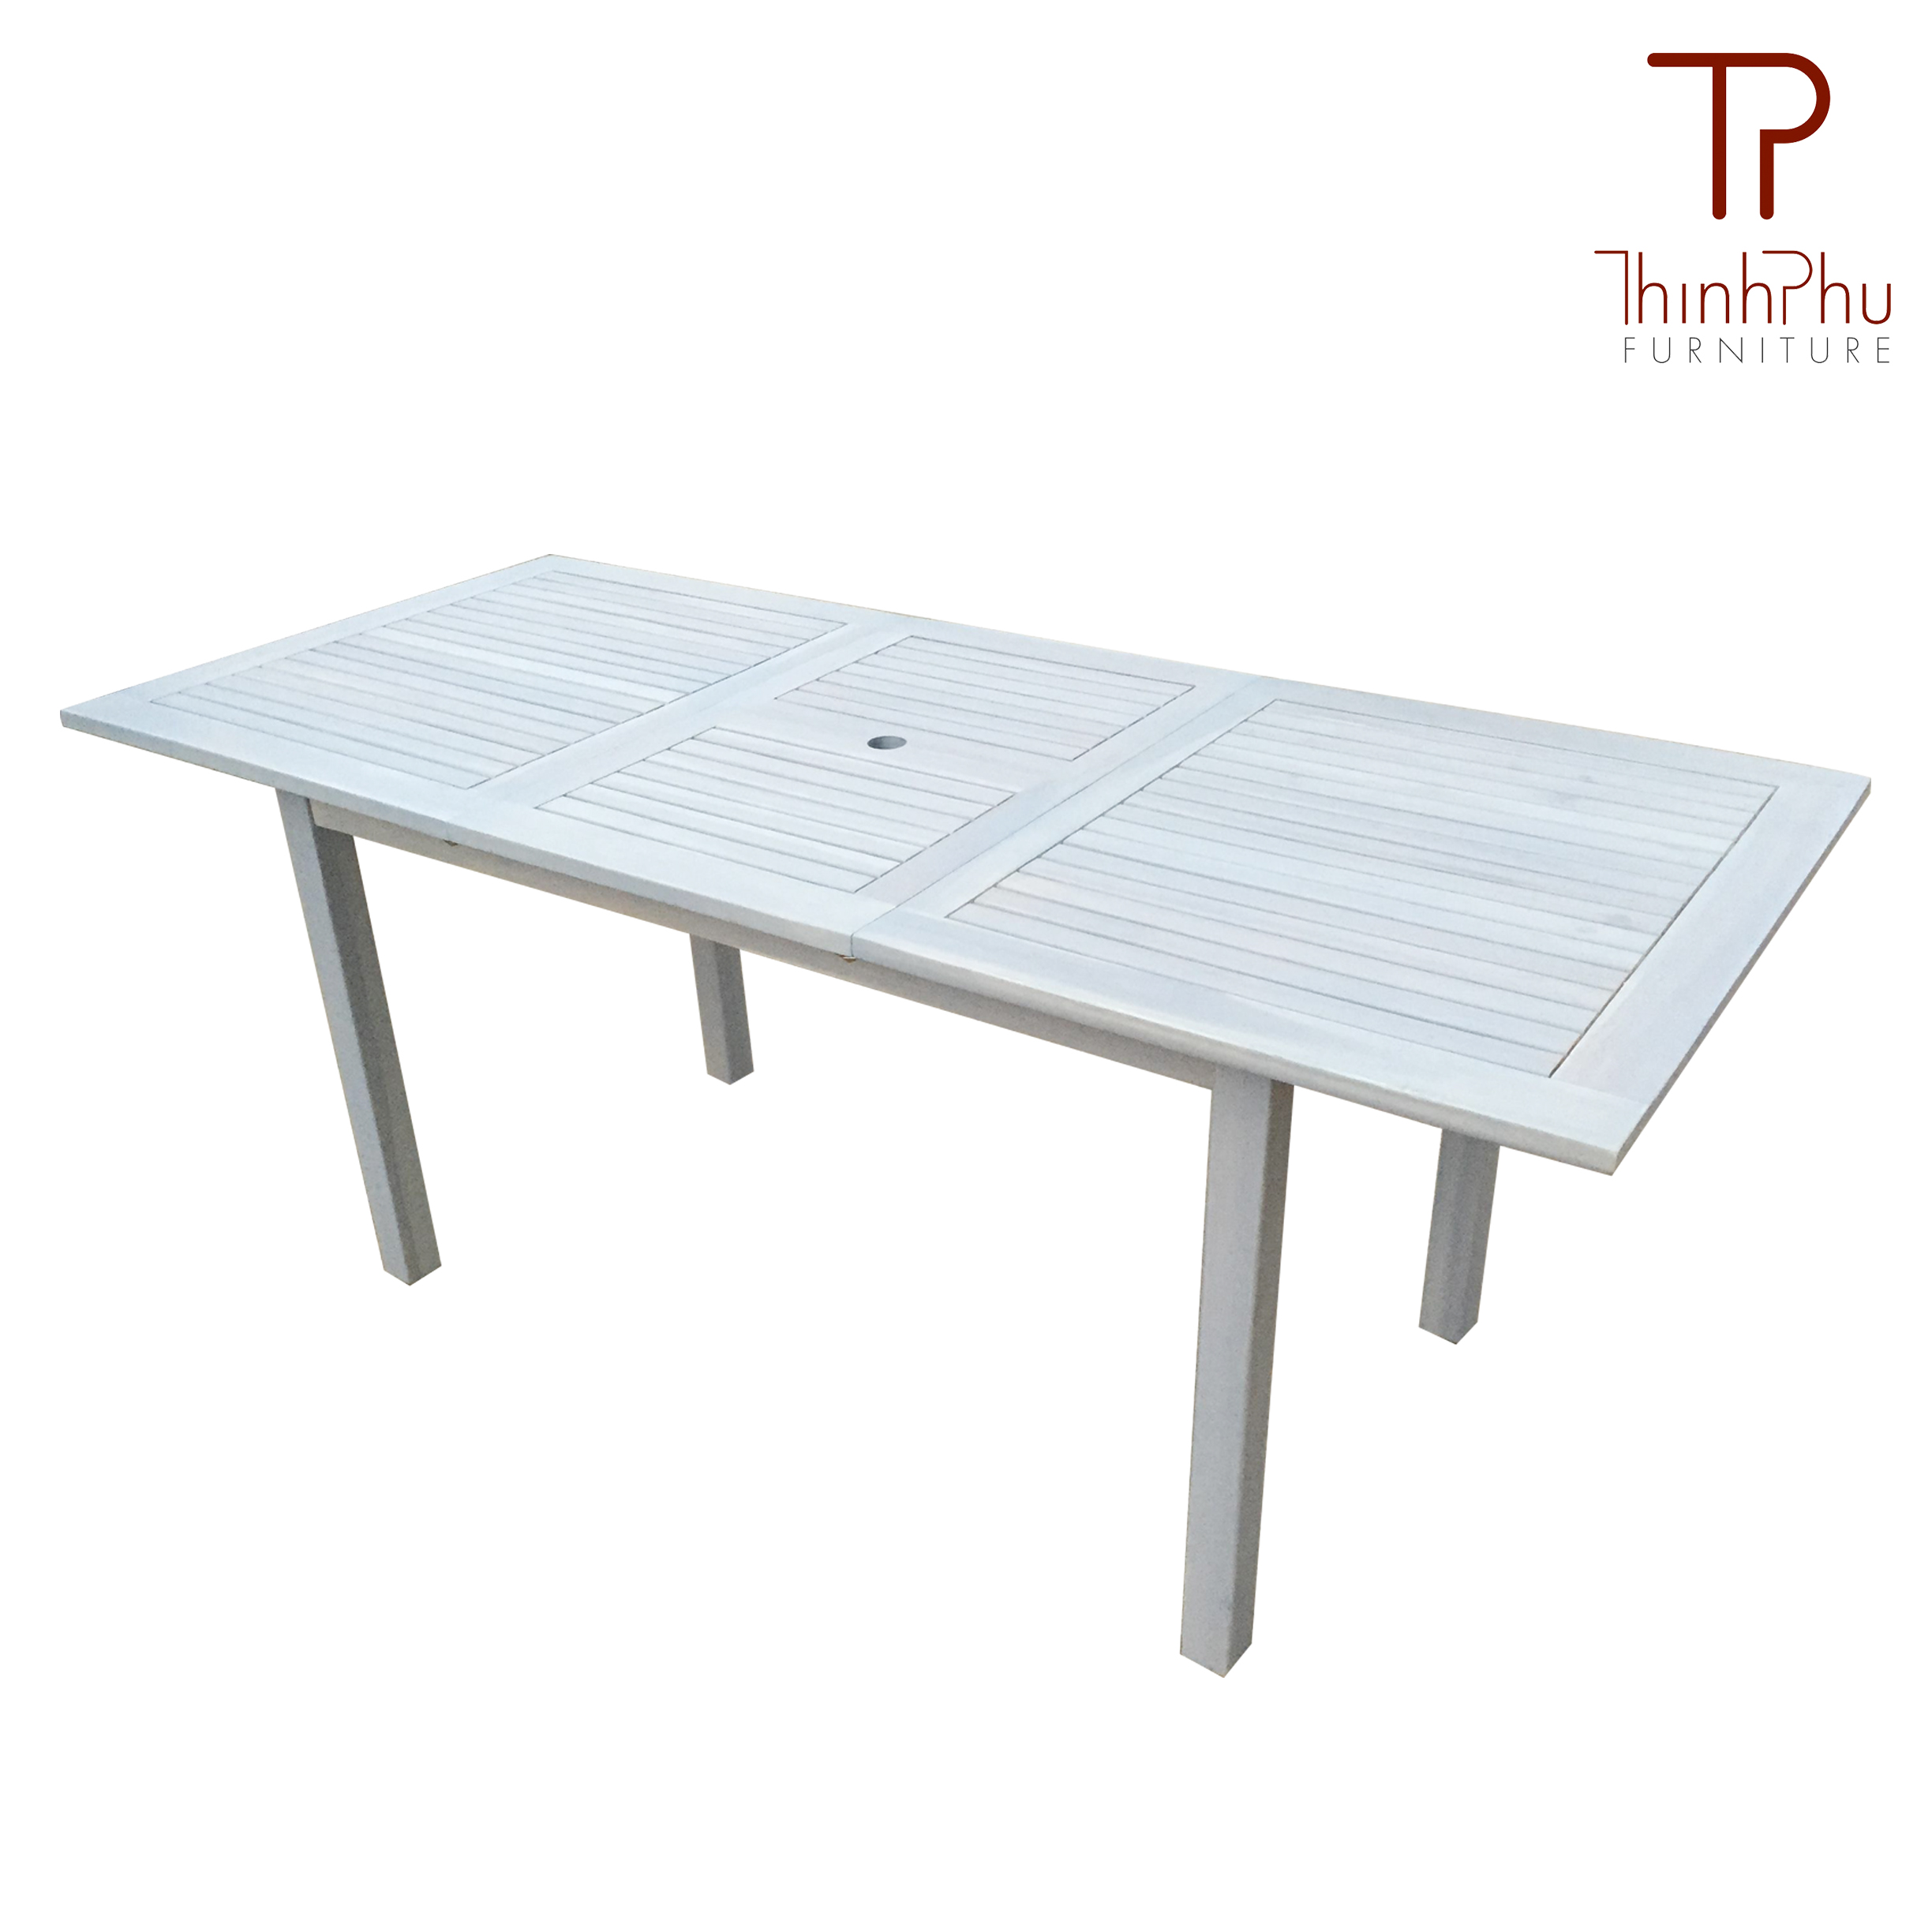 Extension table extengy thinh phu furniture for Outdoor furniture vietnam